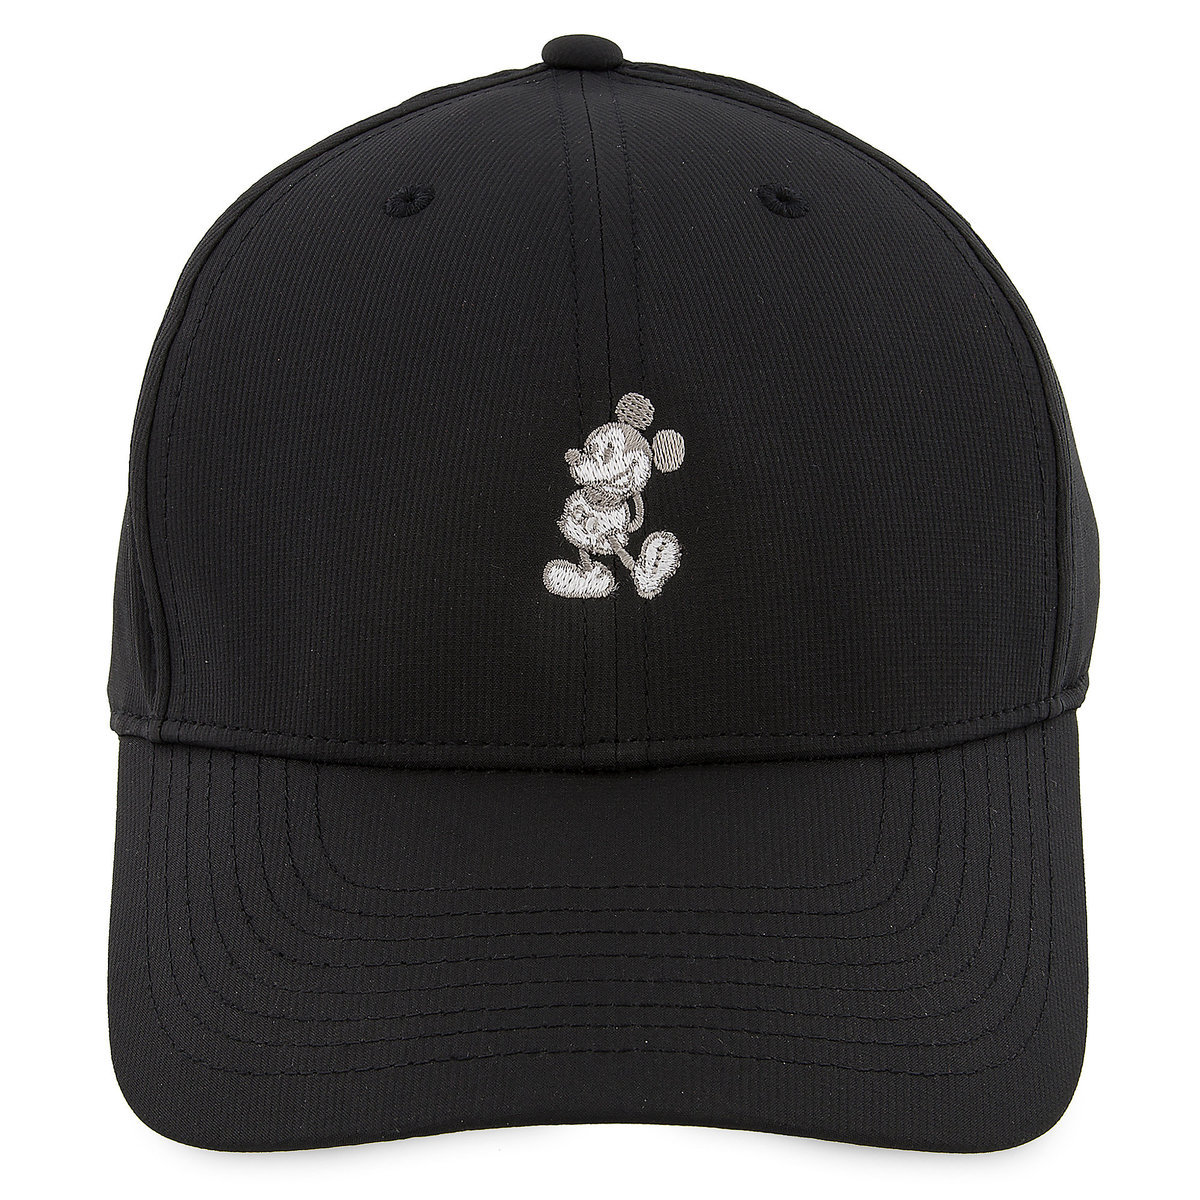 8a7fe16a28b21 Product Image of Mickey Mouse Performance Baseball Cap for Adults by Nike    1